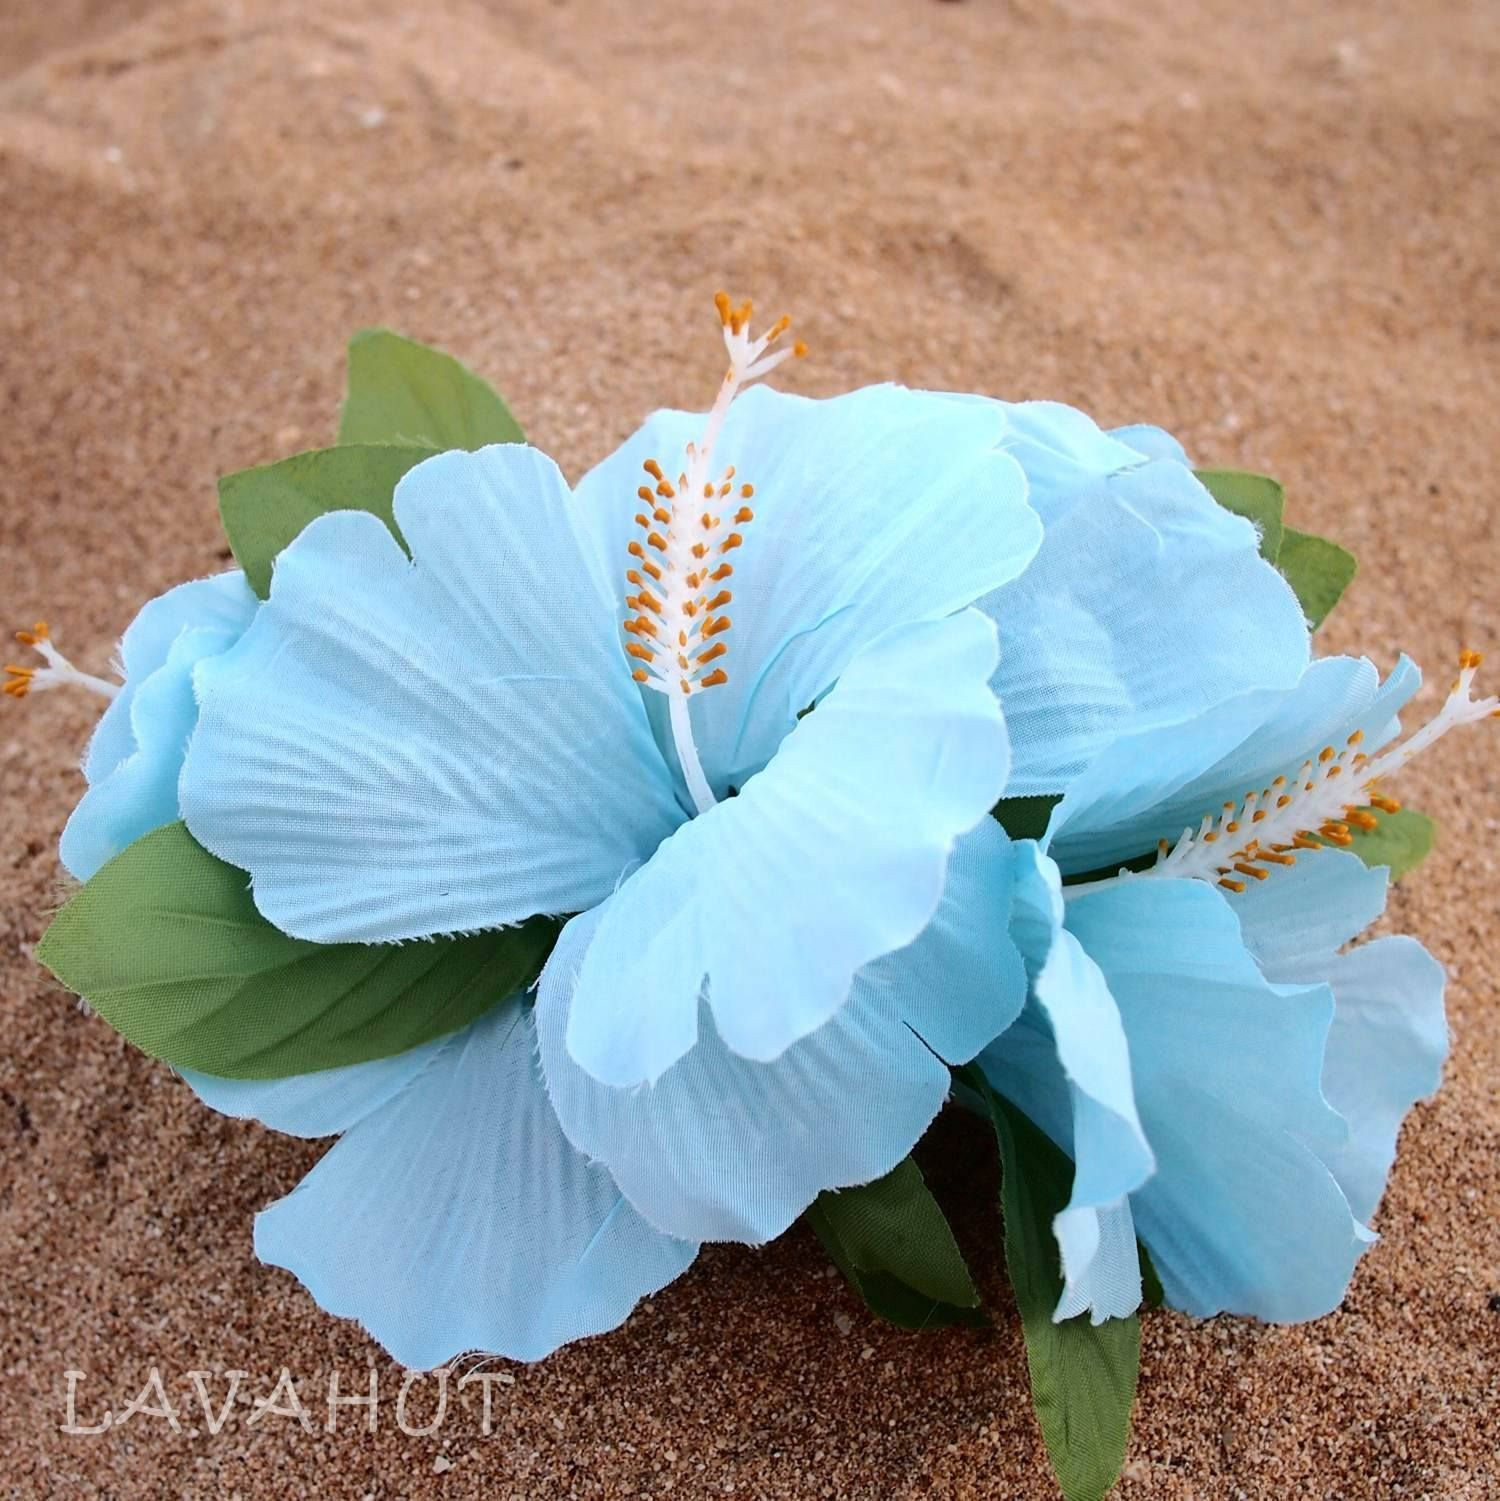 Hibiscus blue hawaiian flower hair clip pinterest hawaiian hibiscus flower hair clip to perfectly pull those locks back silk flower petals alligator clip flower length 6 clip length 375 izmirmasajfo